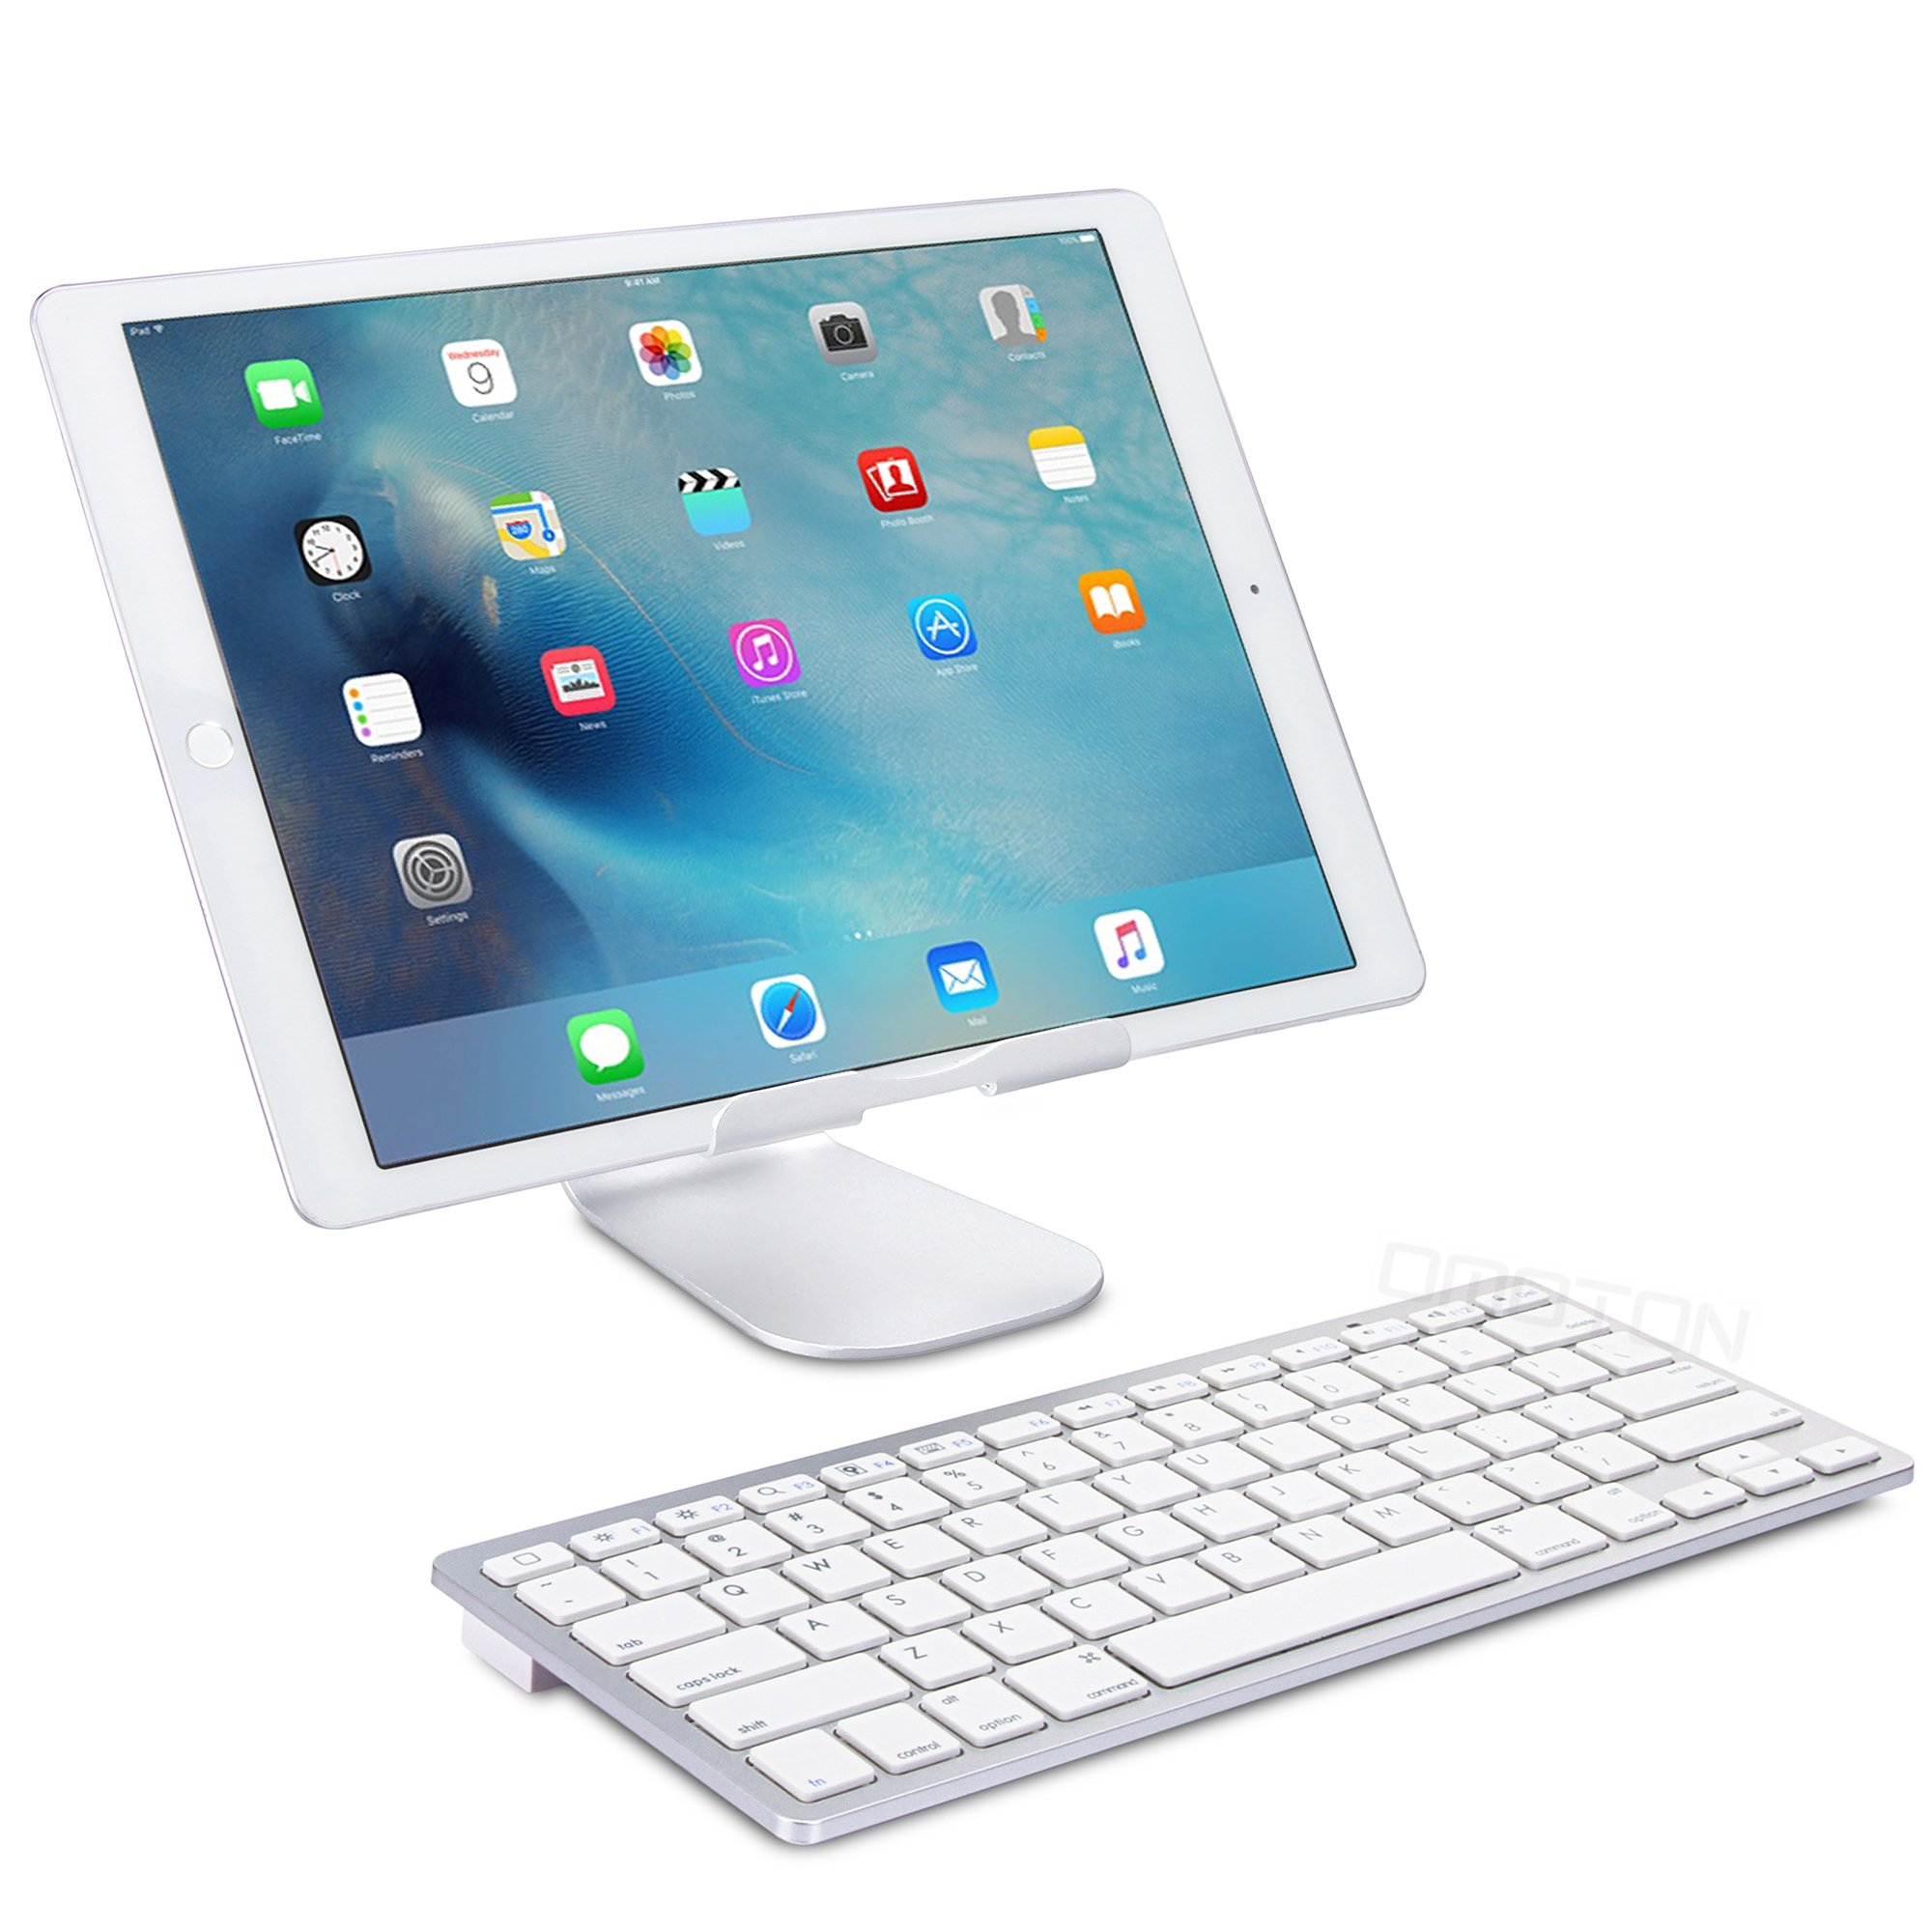 Bluetooth keyboard gifts for business travelers